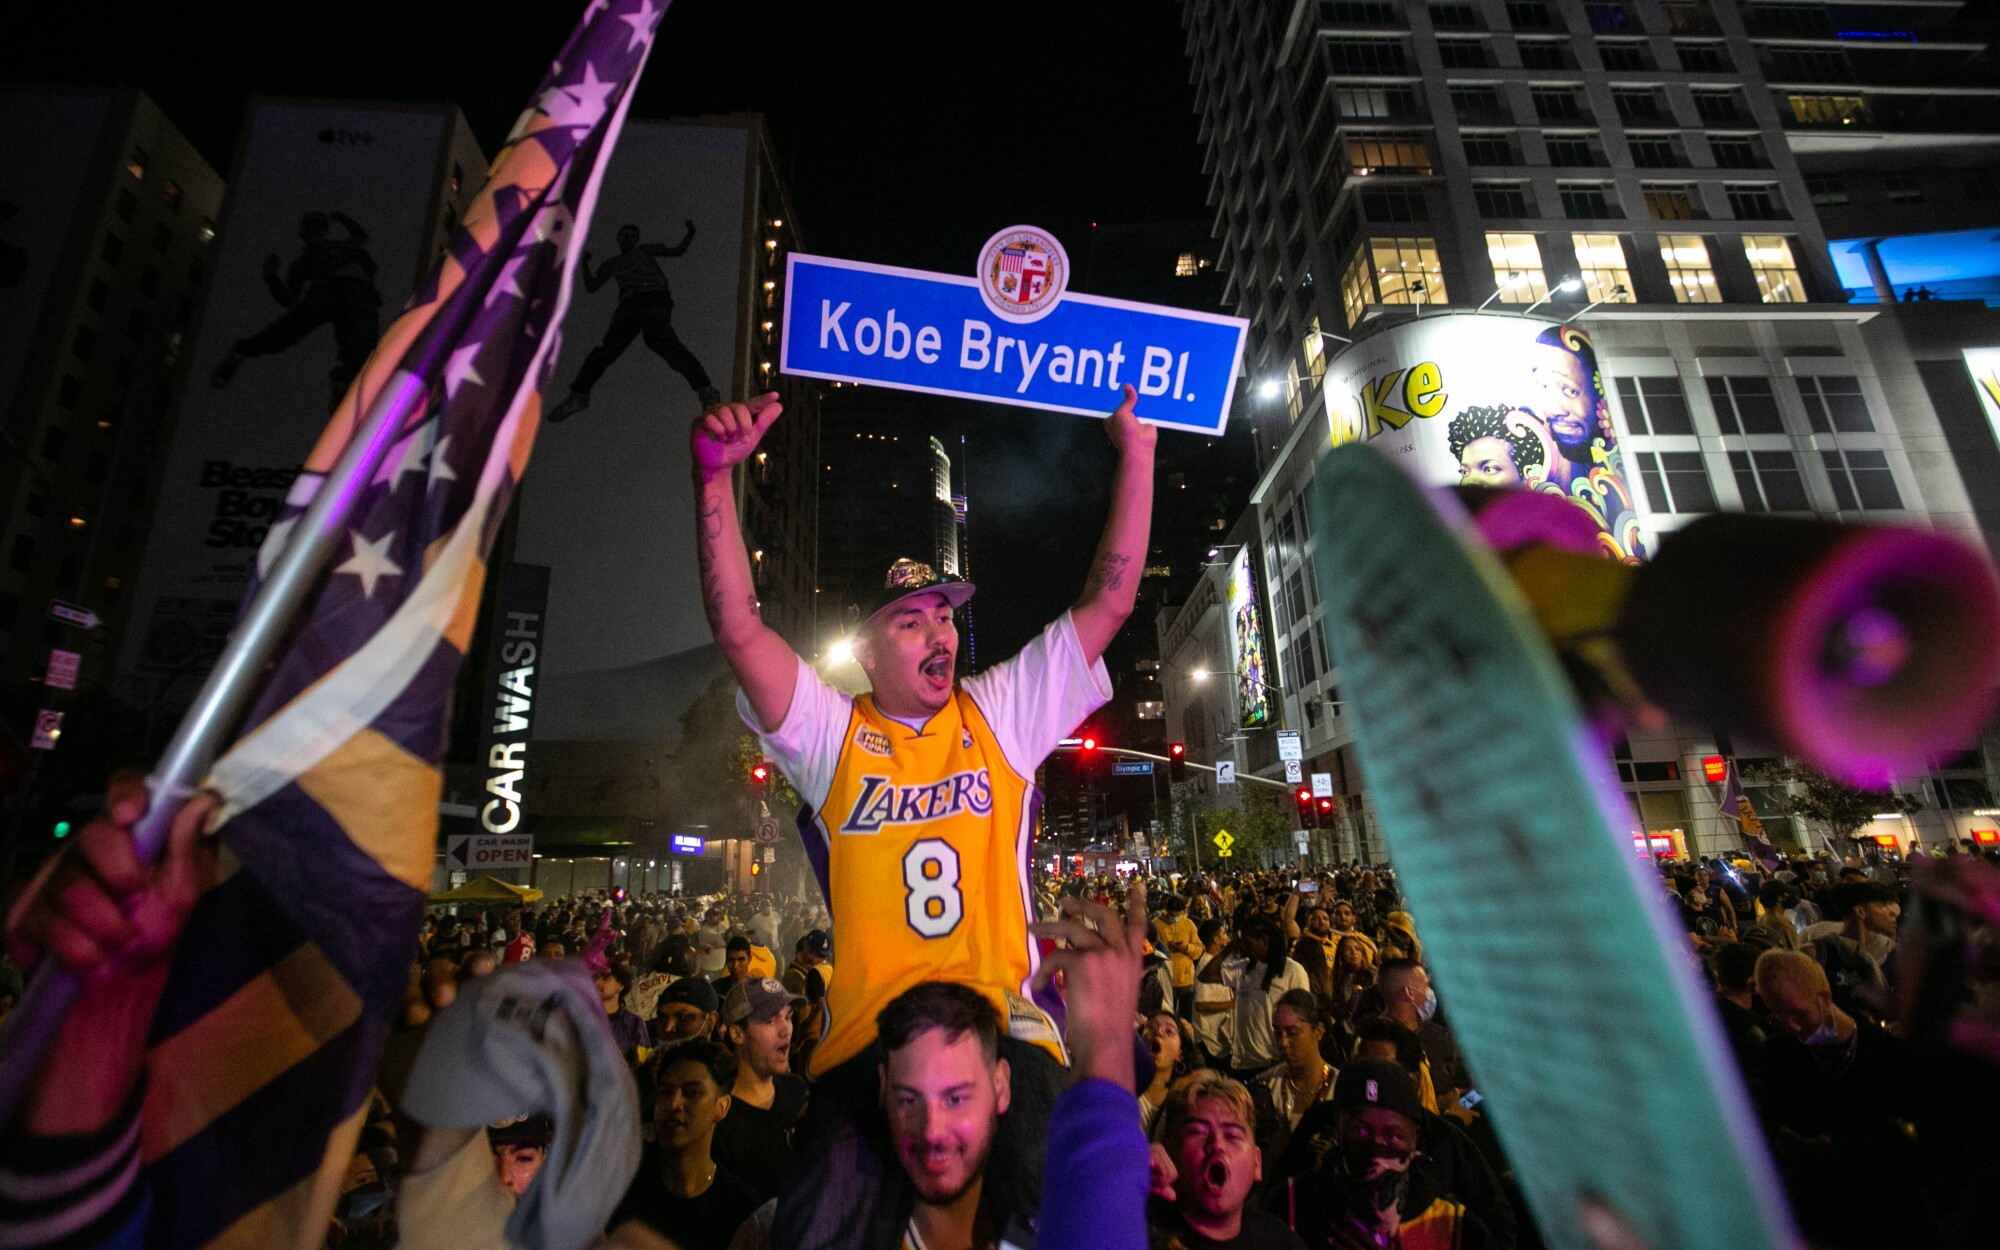 A man in a gold Lakers 8 jersey on the shoulders of another man holds a Kobe Bryant Boulevard street sign